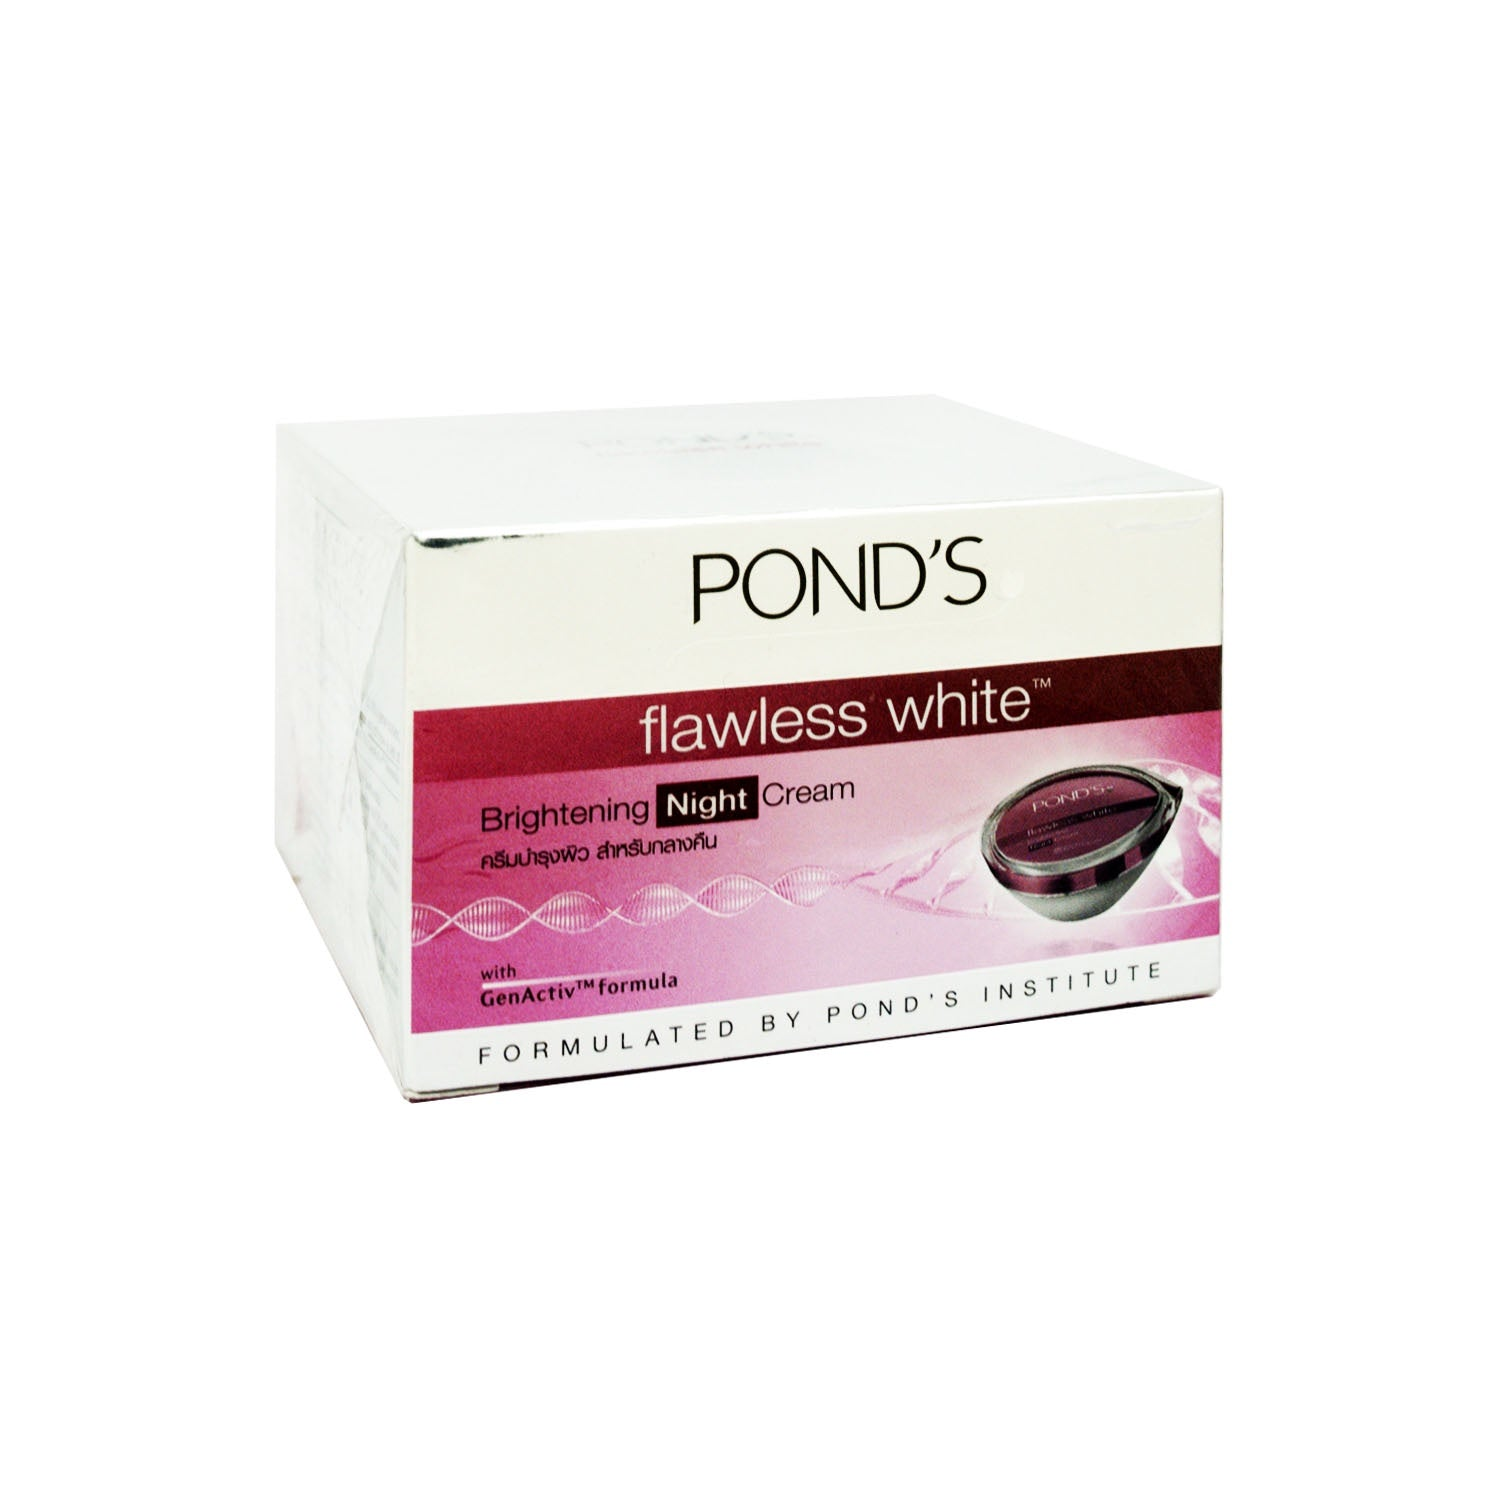 Pond's, Flawless White Brightening Night Cream, 10 g